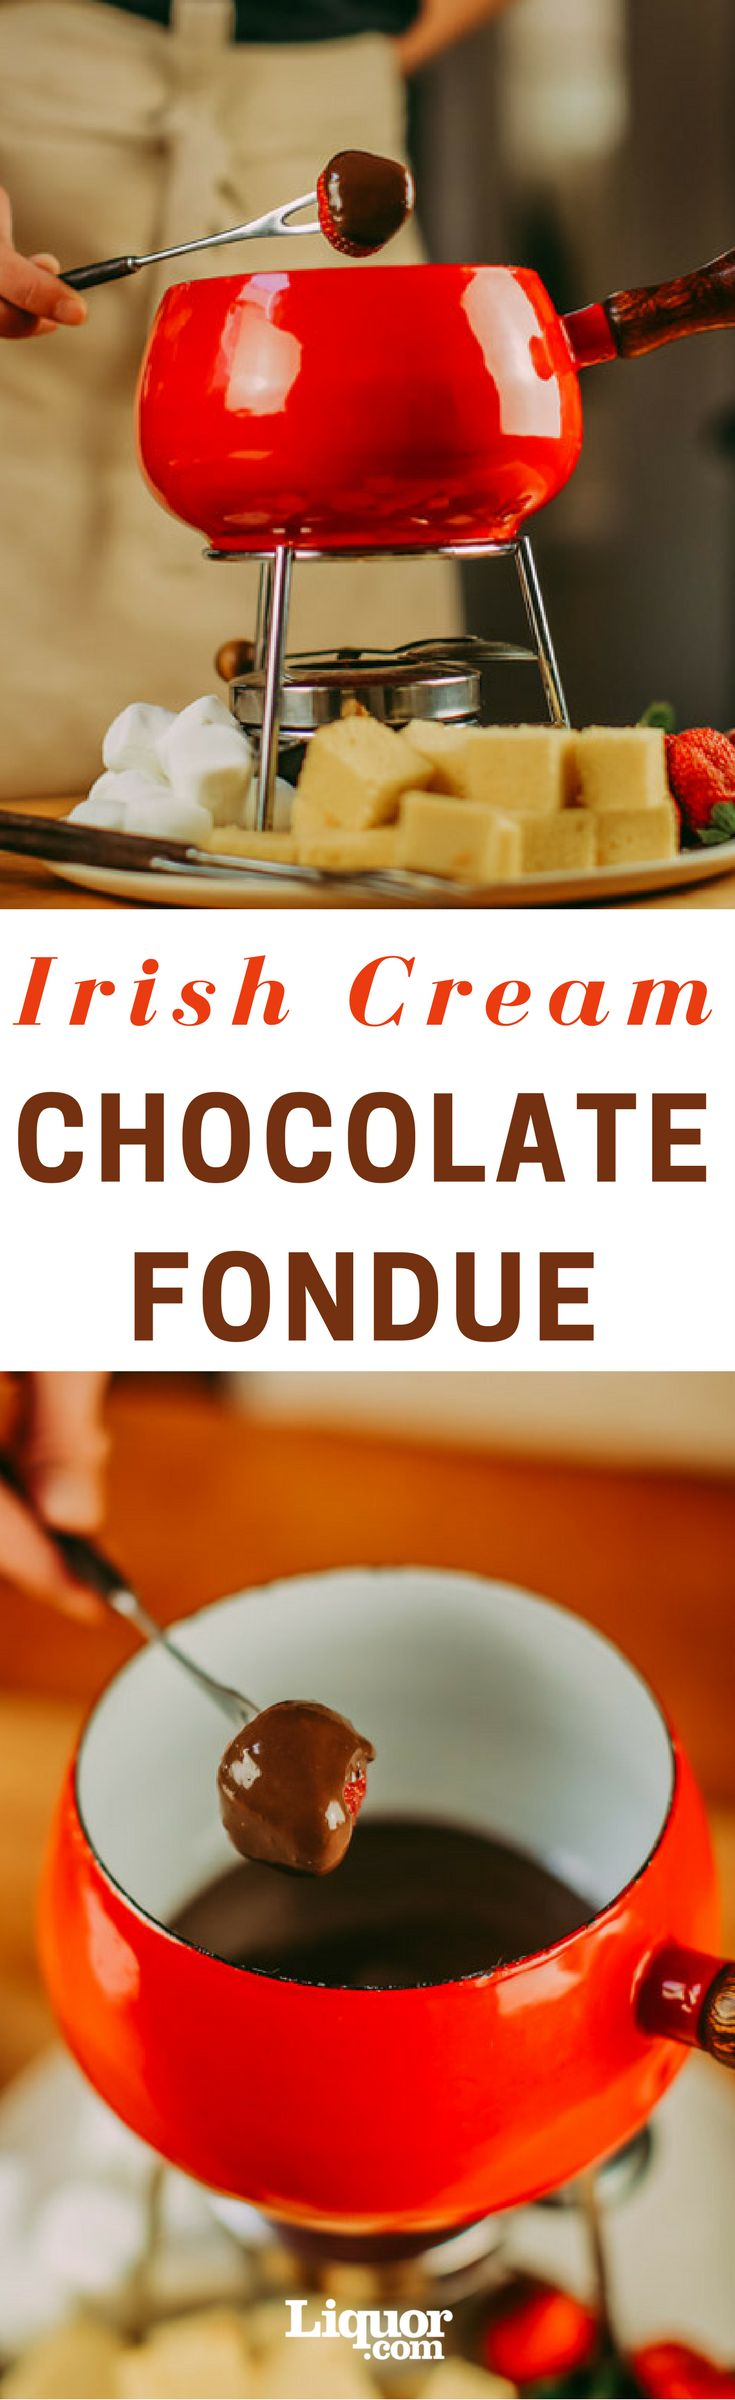 Forget green beer. Instead, cap off your St. Patrick's Day celebration with a rich chocolate fondue with some Baileys stirred in. Fruit might be the traditional accompaniment to fondue, but cubed pound cake, brownie bites and marshmallows are great, too.